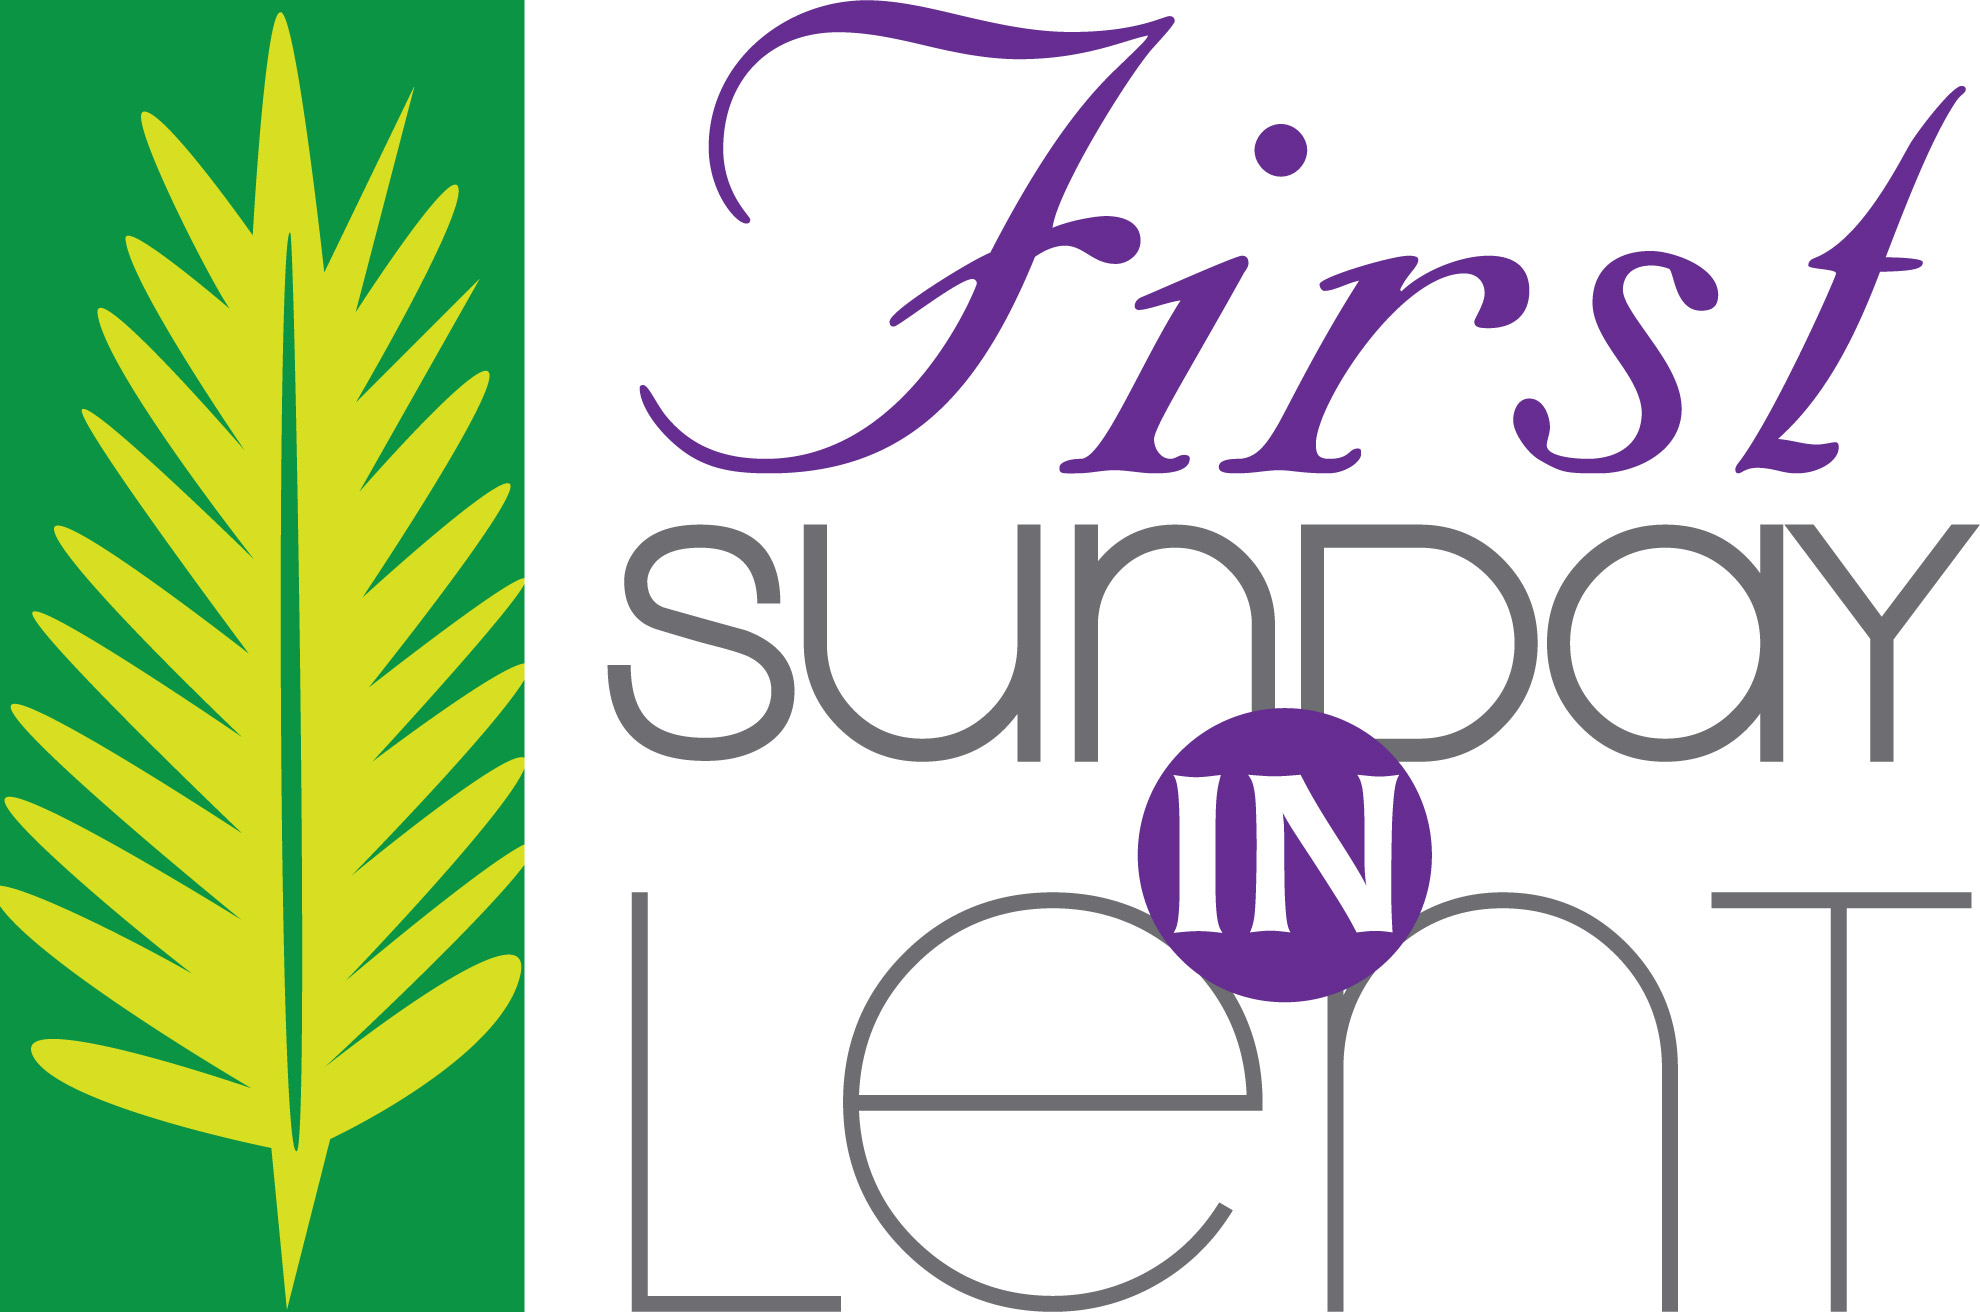 The First Sunday In Lent